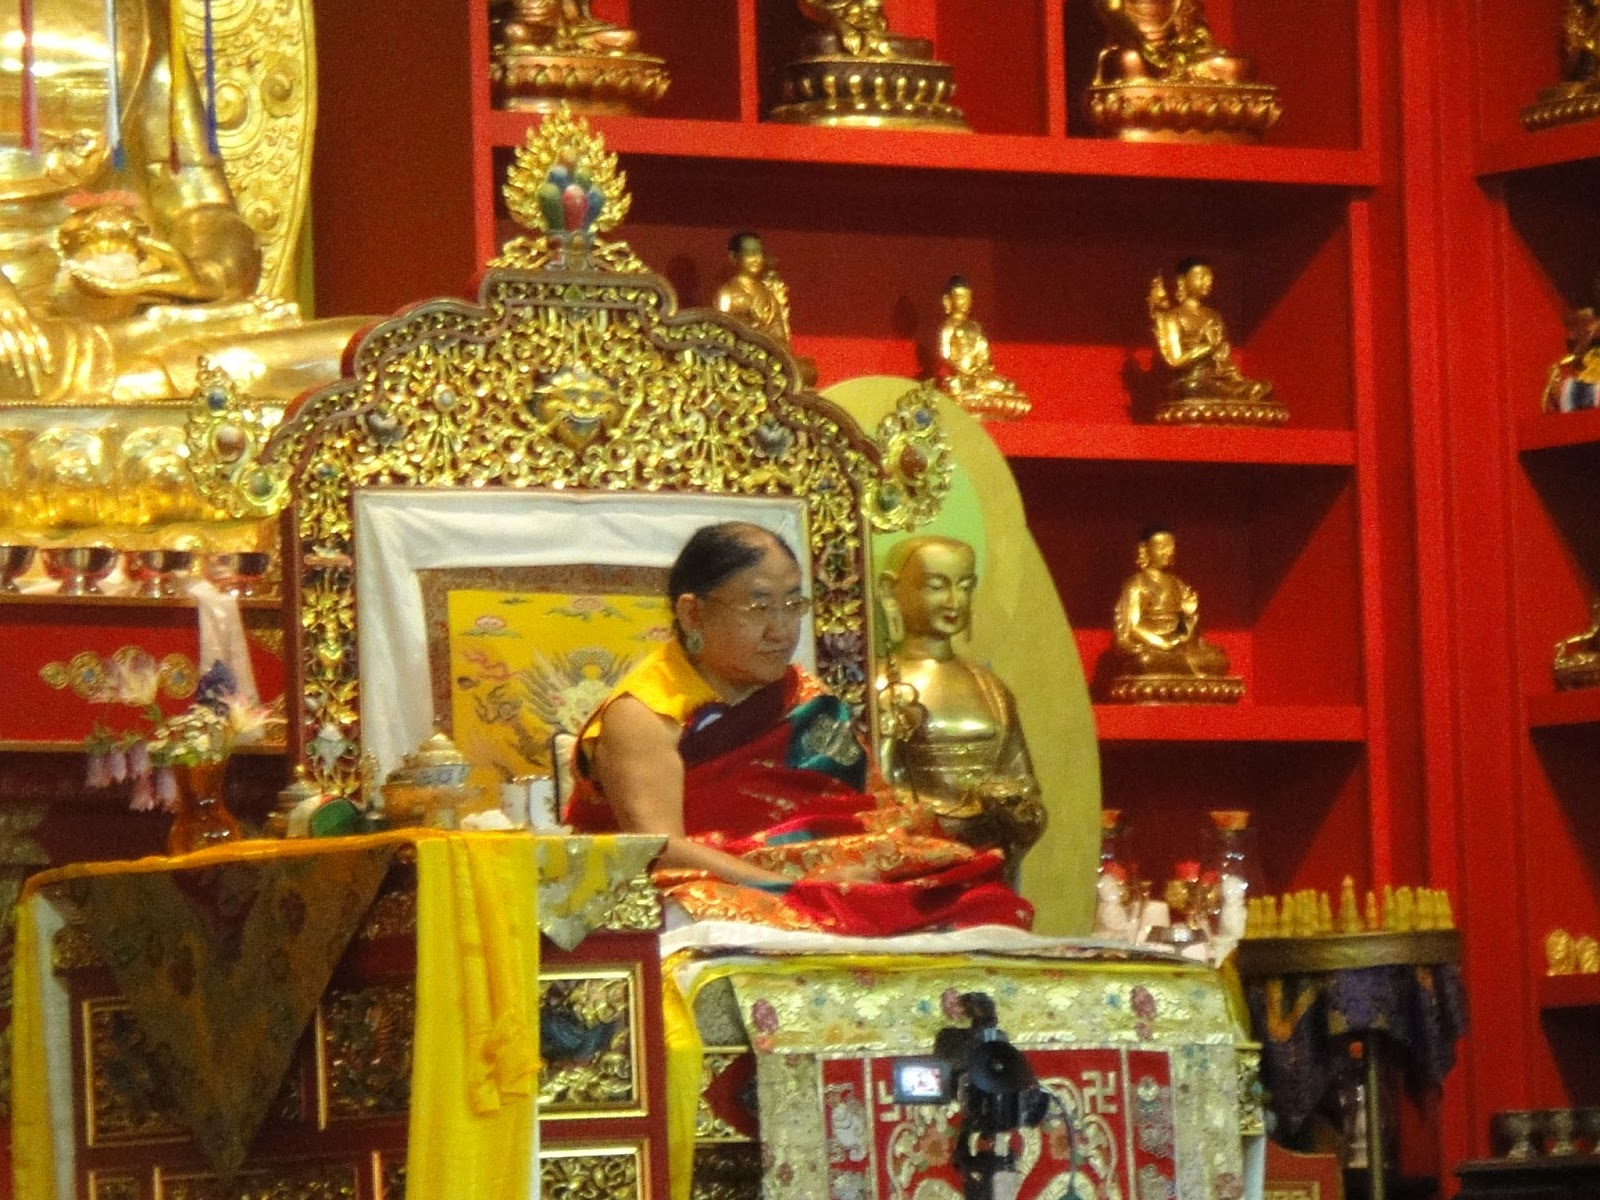 Long life ceremony for His Holiness Sakya Trizin and temple